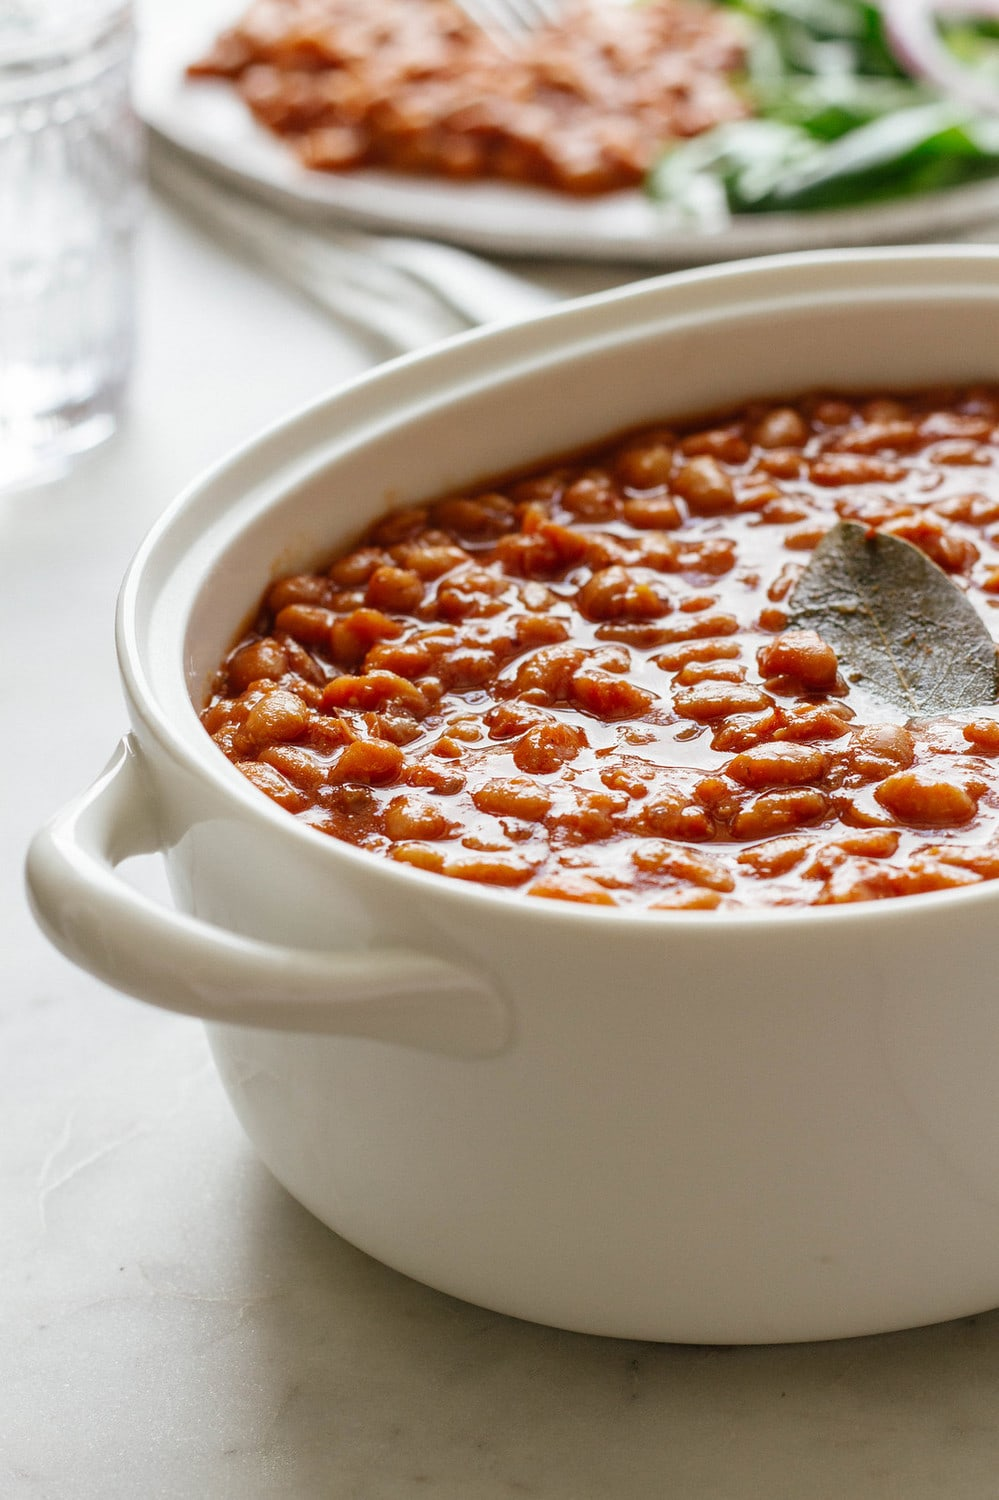 freshly baked beans in a serving dish